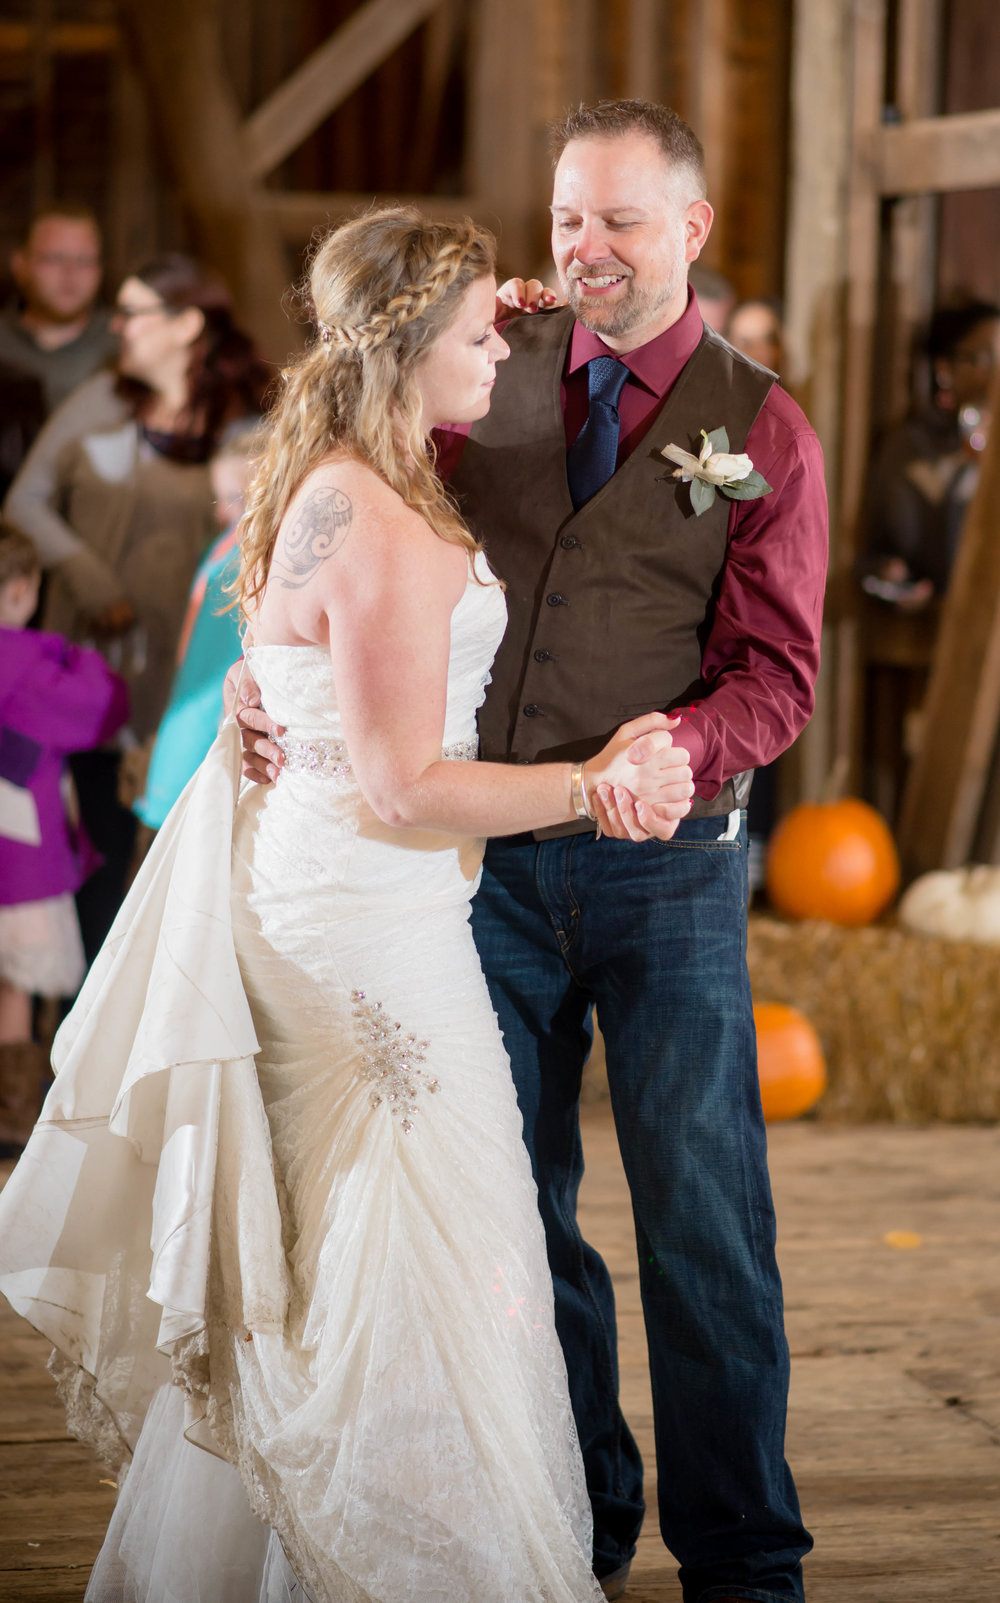 M&Rreception-firstdance-11.jpg